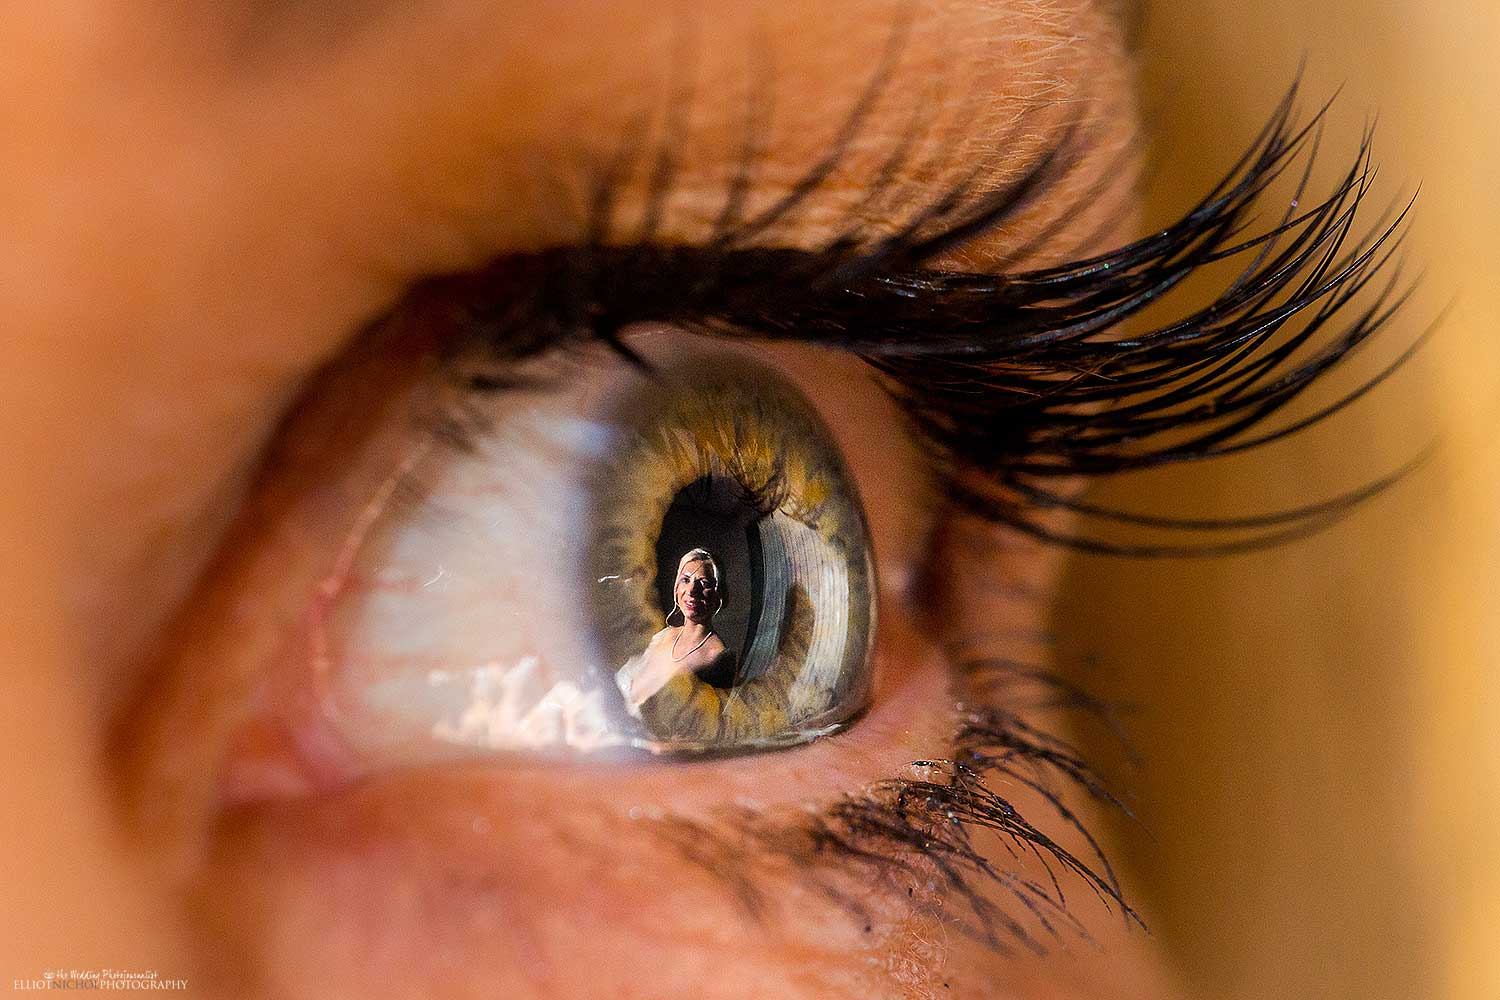 Reflection of the bride in her mothers eye. Photo by Wedding Photographer Eliiot Nichol.